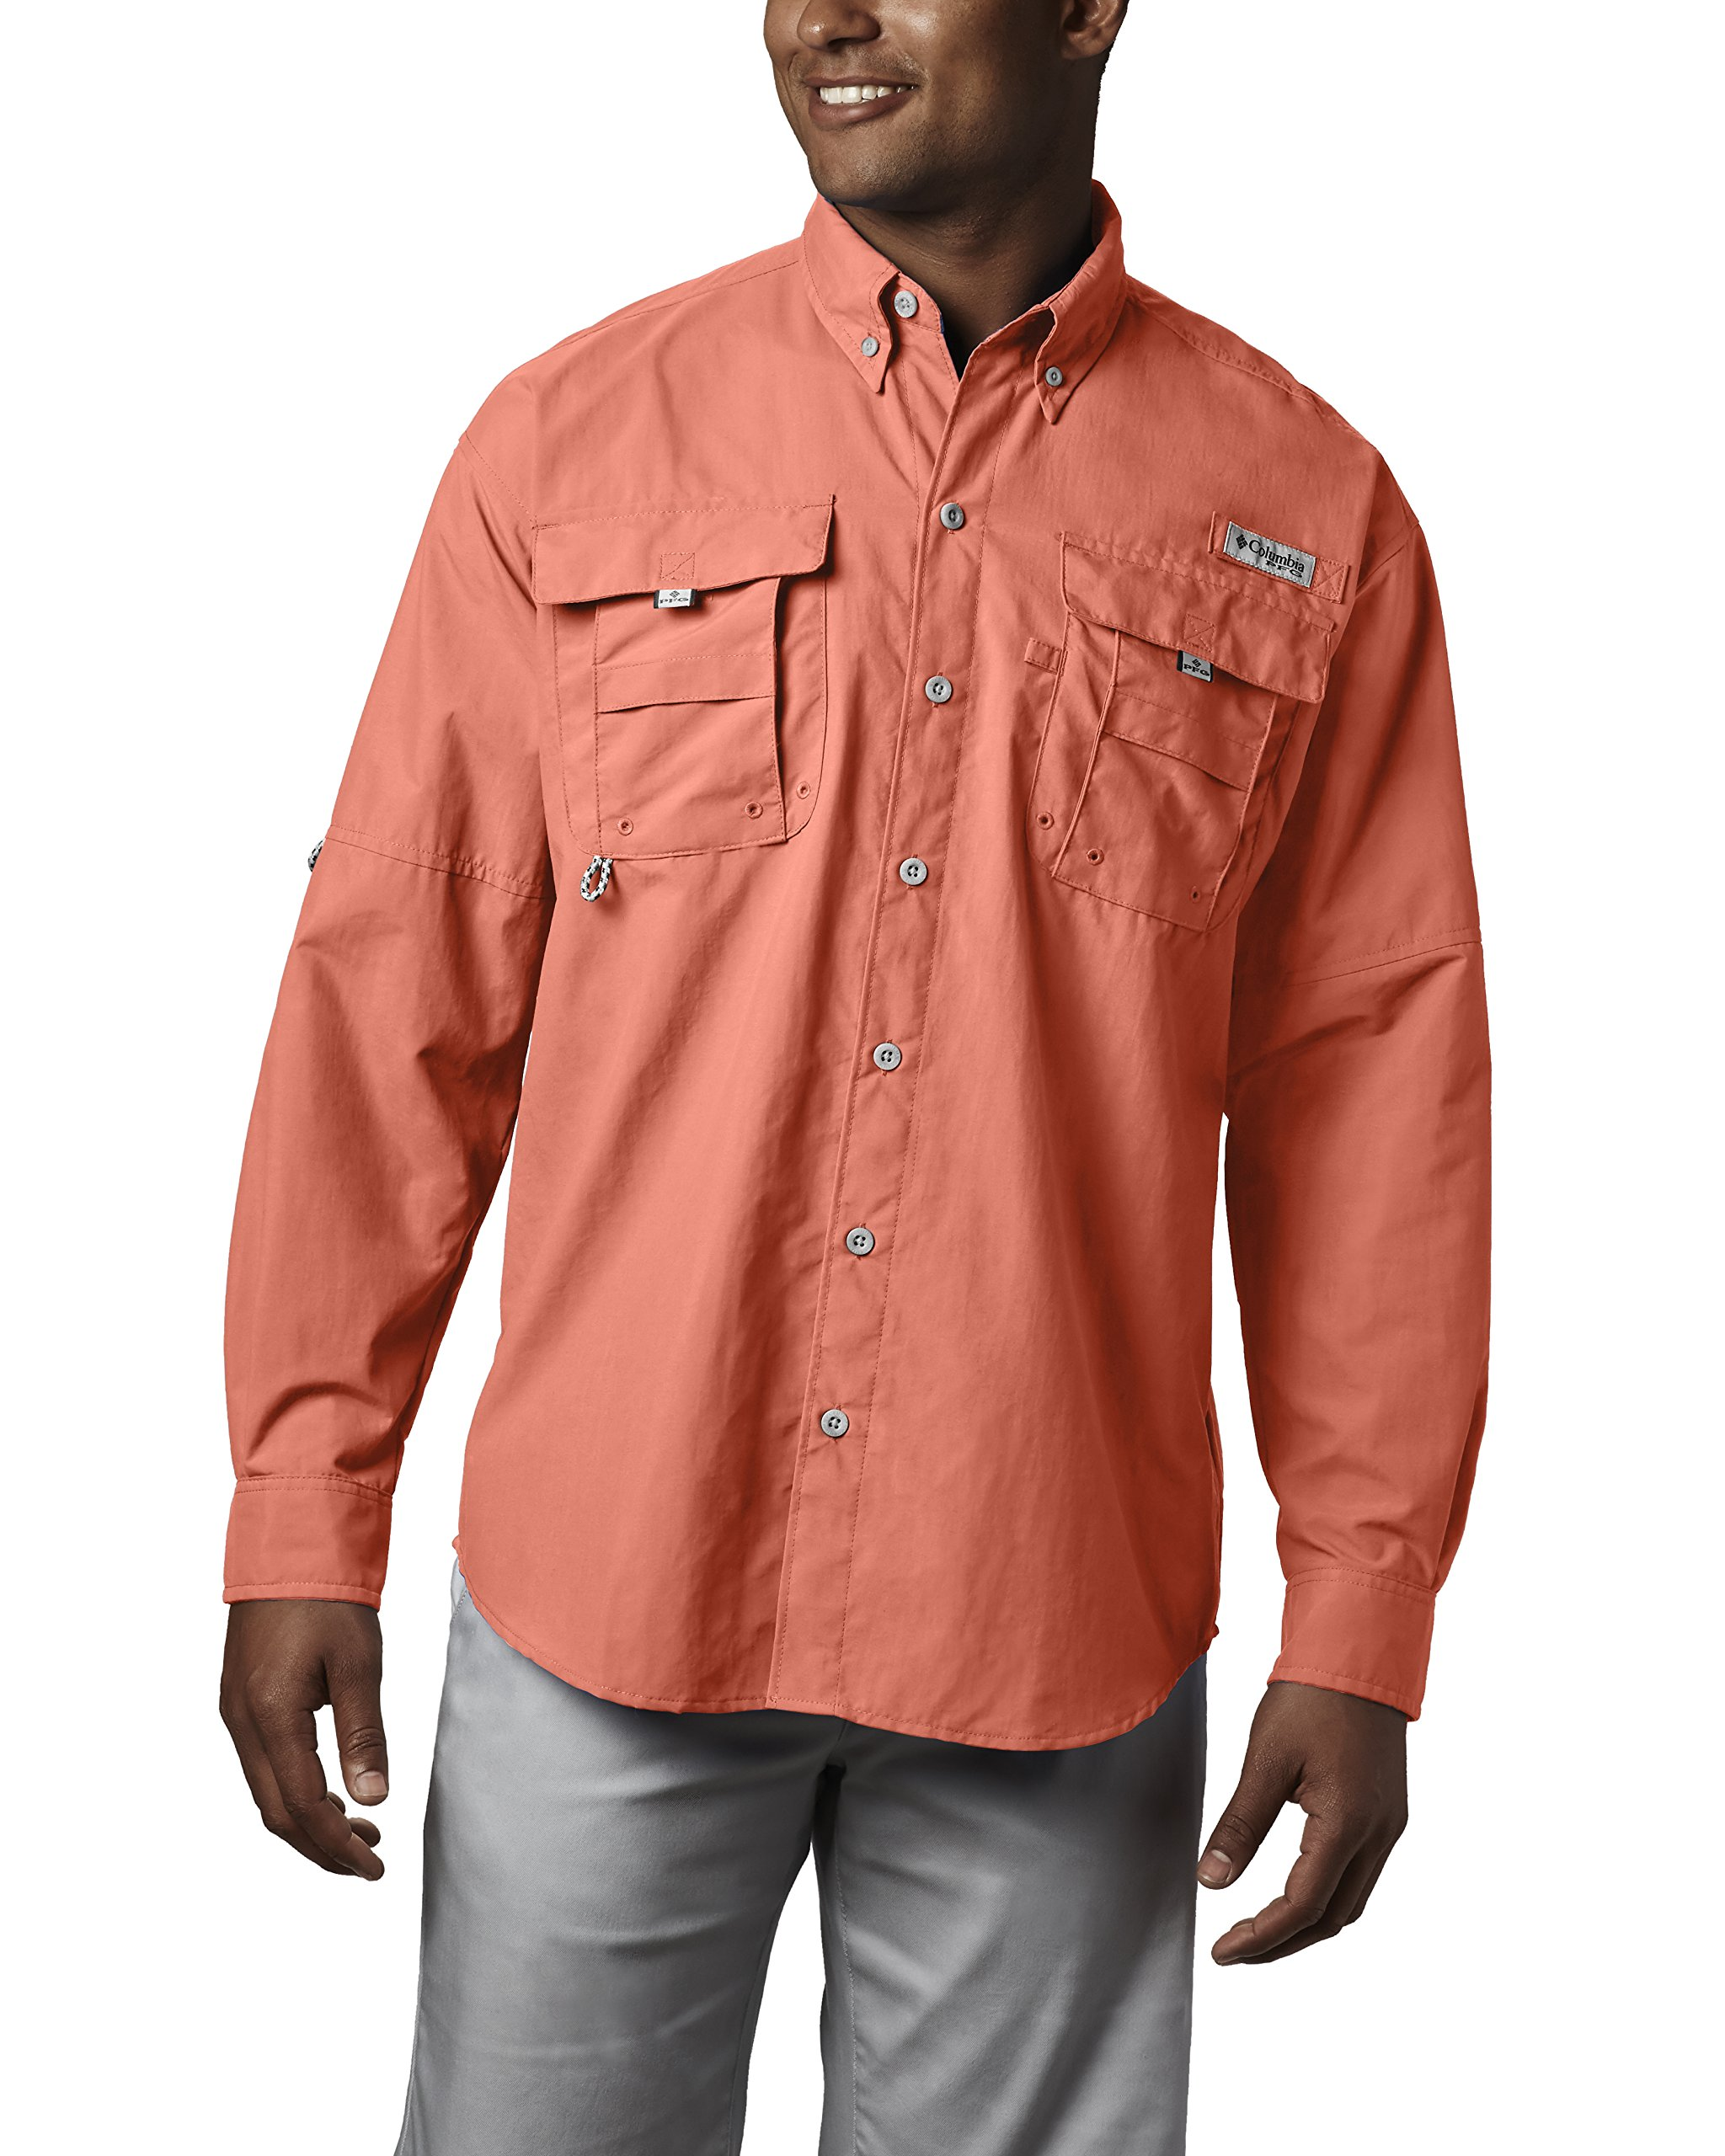 51ffbe60a Columbia Men's PFG Bahama II Long Sleeve Shirt, Breathable with UV  Protection